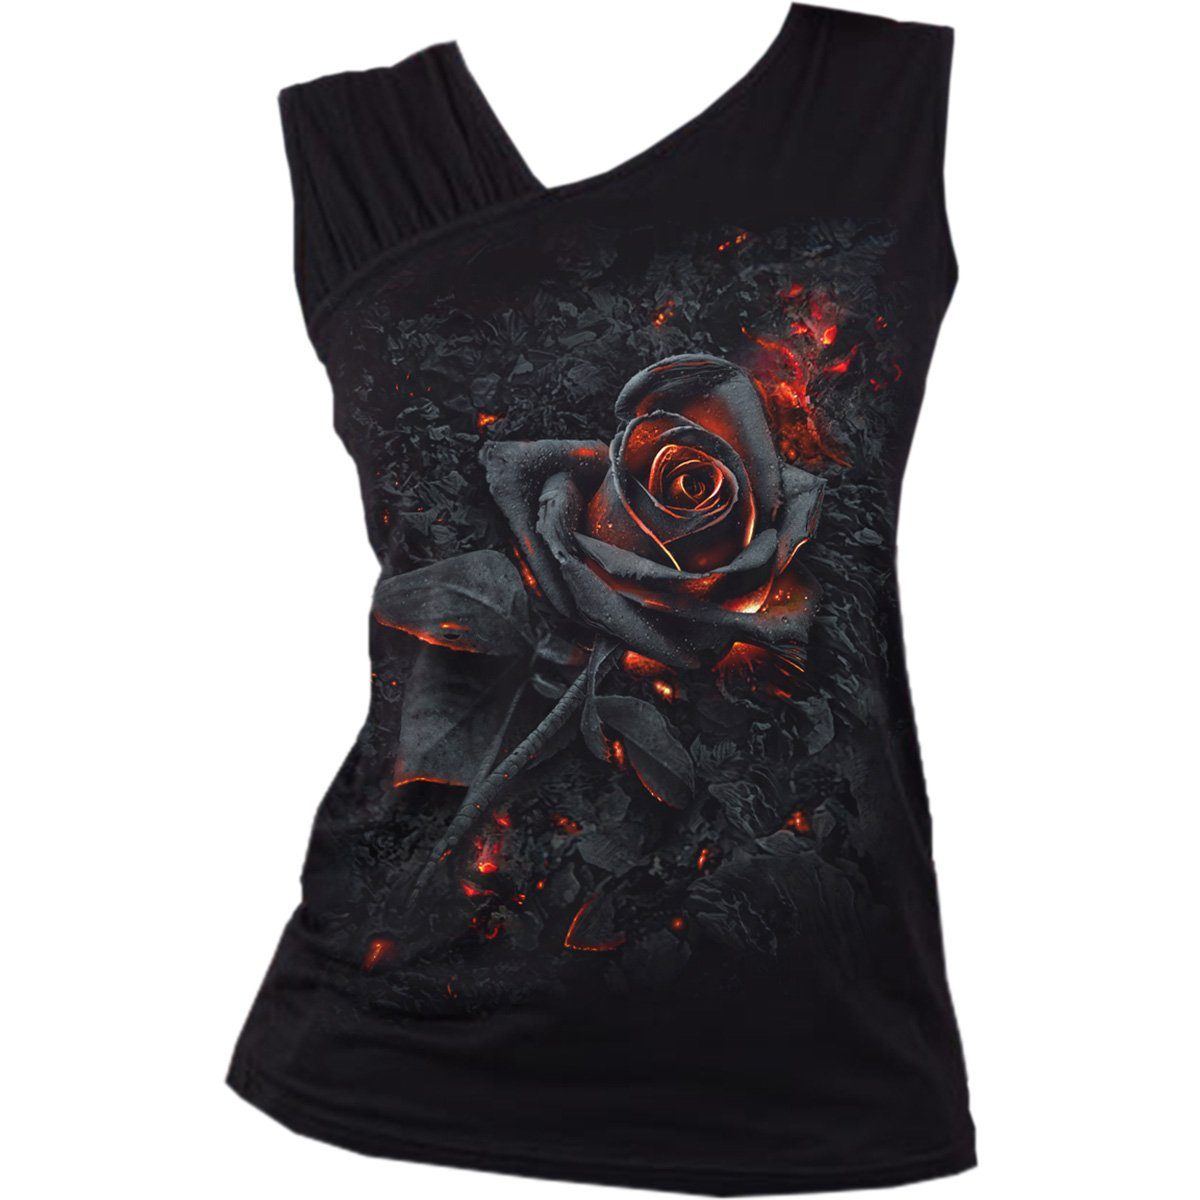 Burnt Rose Women's Sleeveless Slant Top